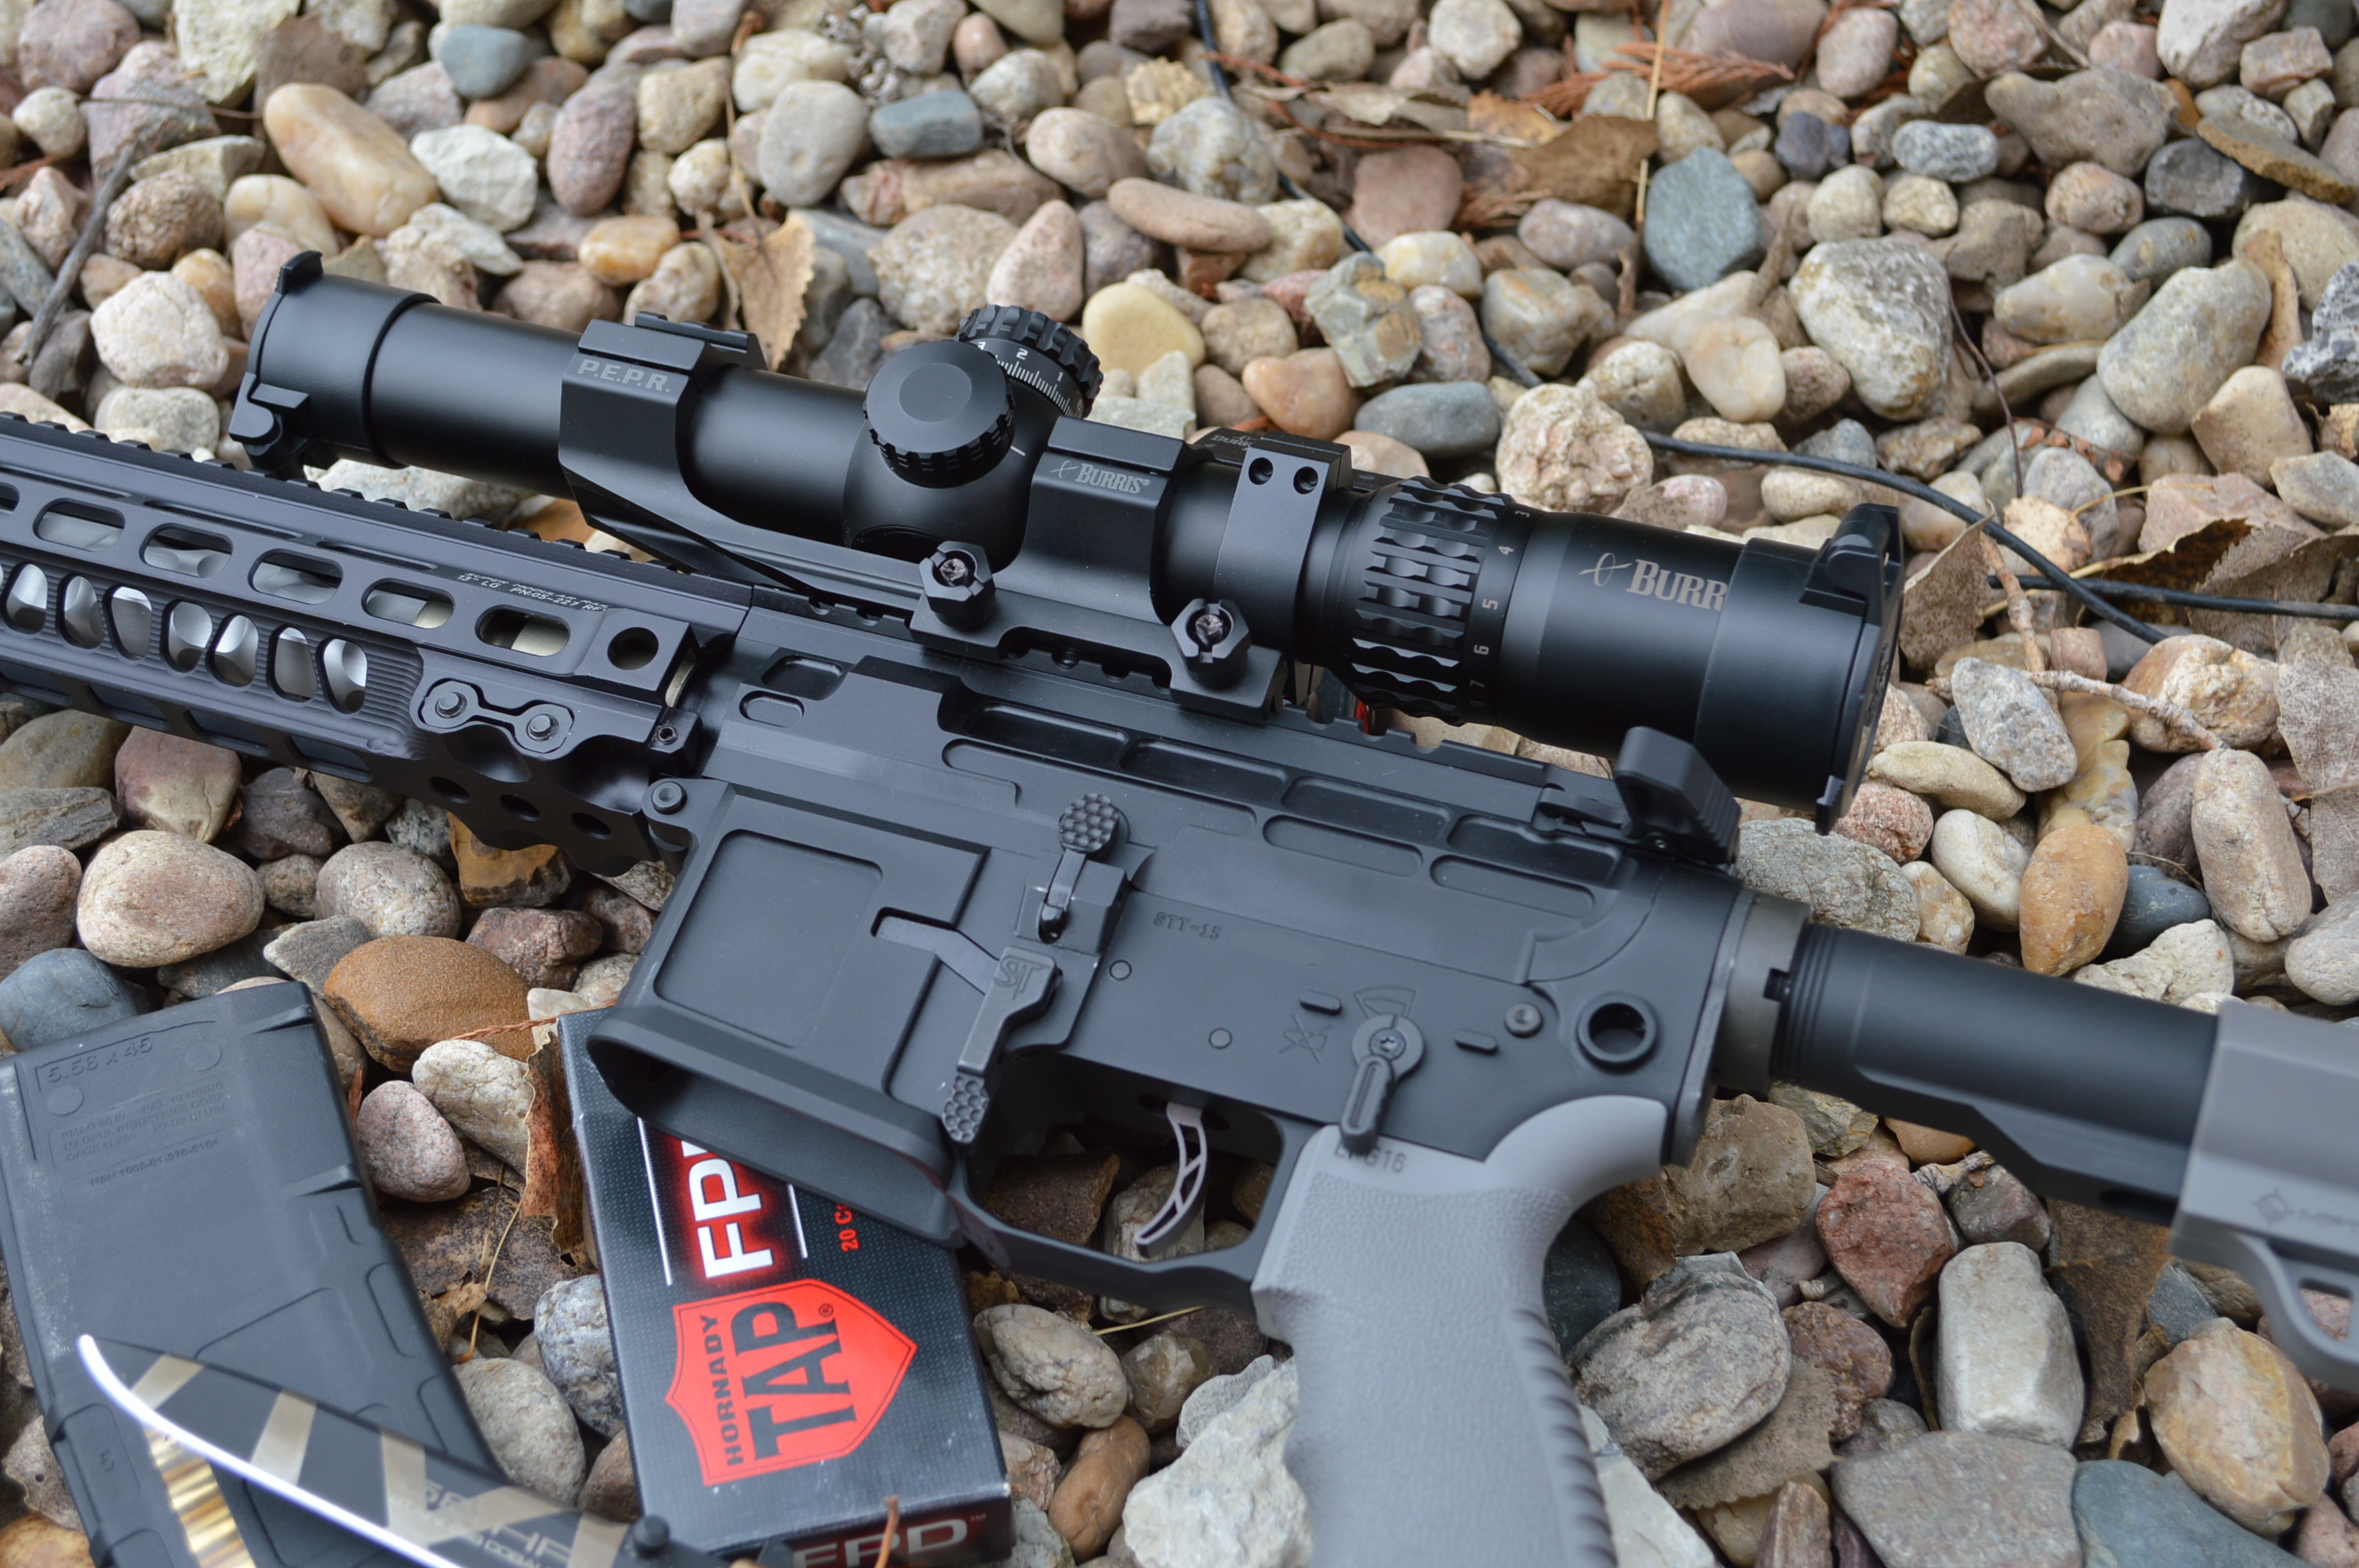 Review Burris Xtrii 15x 8x 34mm Scope And Fastfire 3 Red Dot Combo